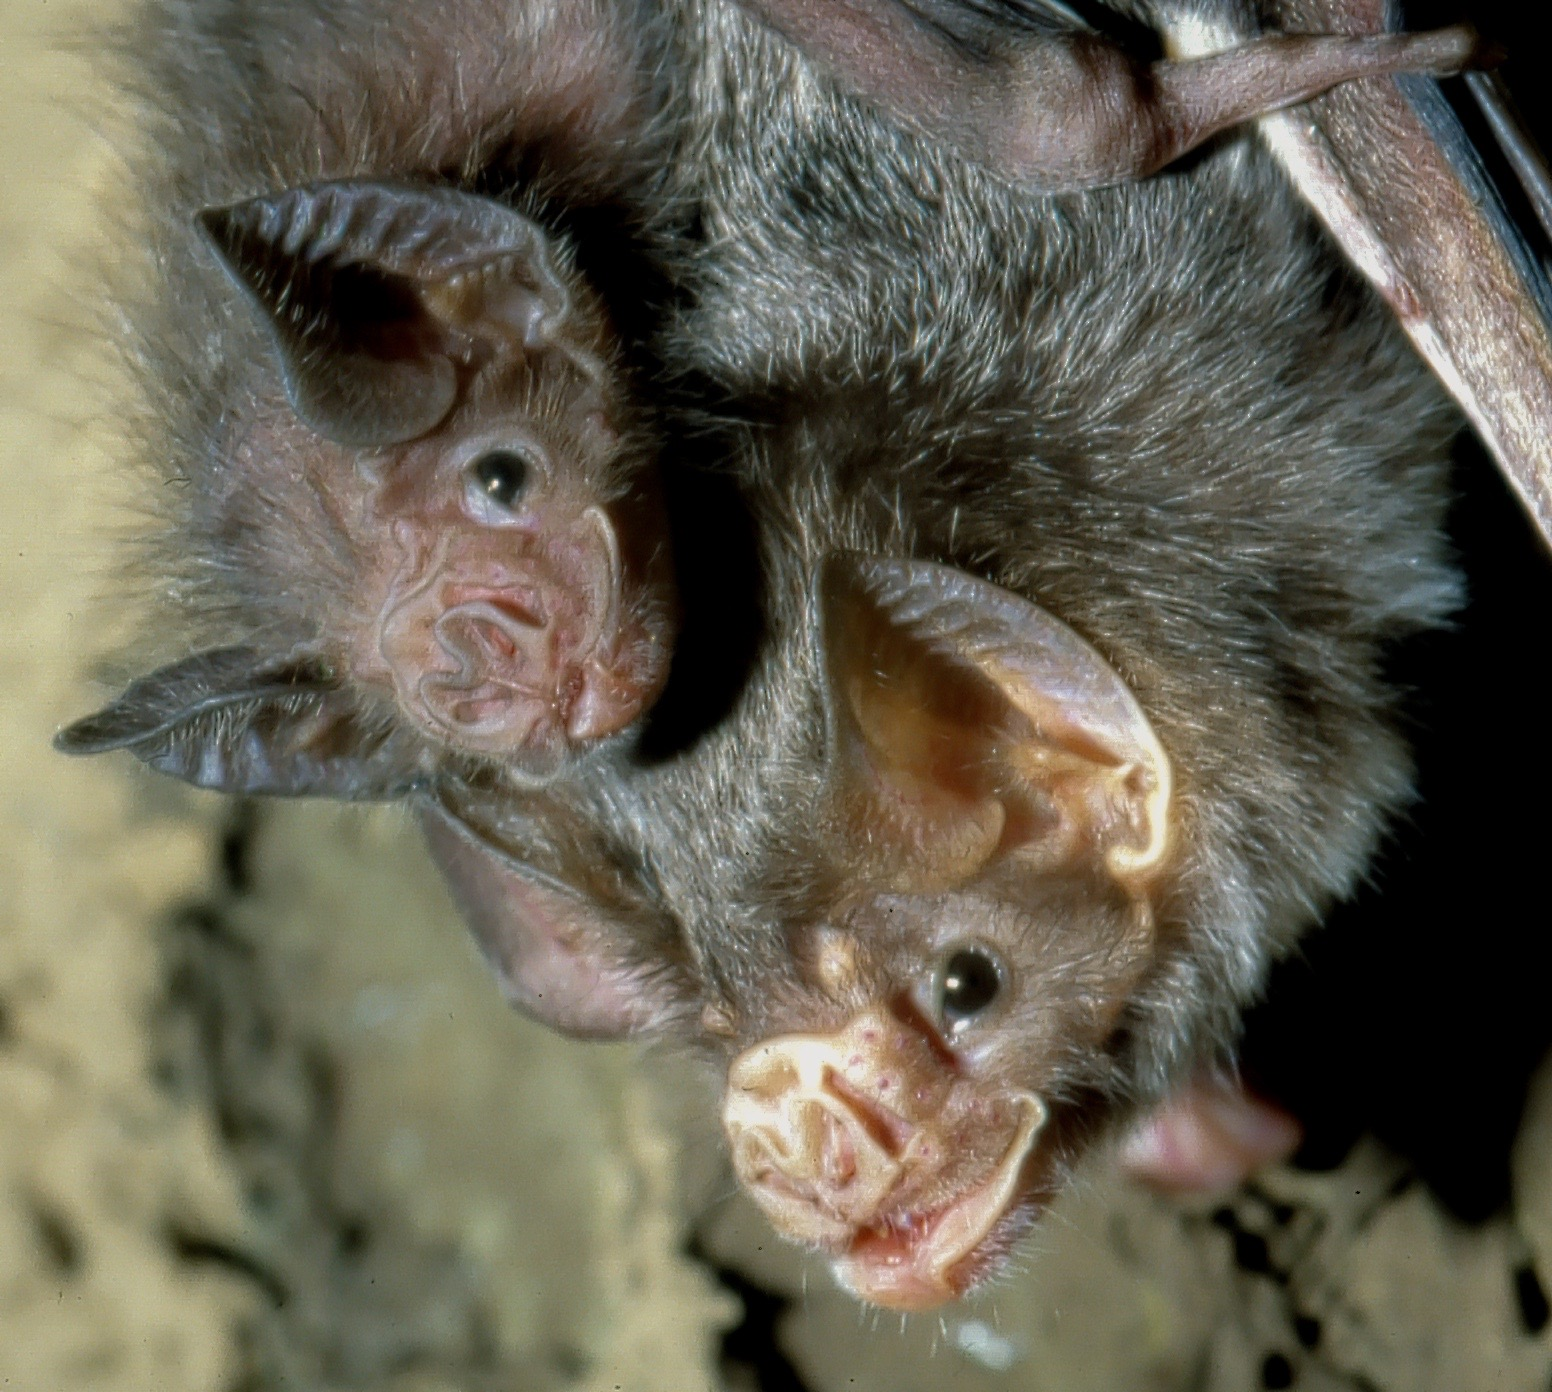 Female vampire bats forge relationships outside their nuclear families as safety nets in case family members are lost, a new study says.